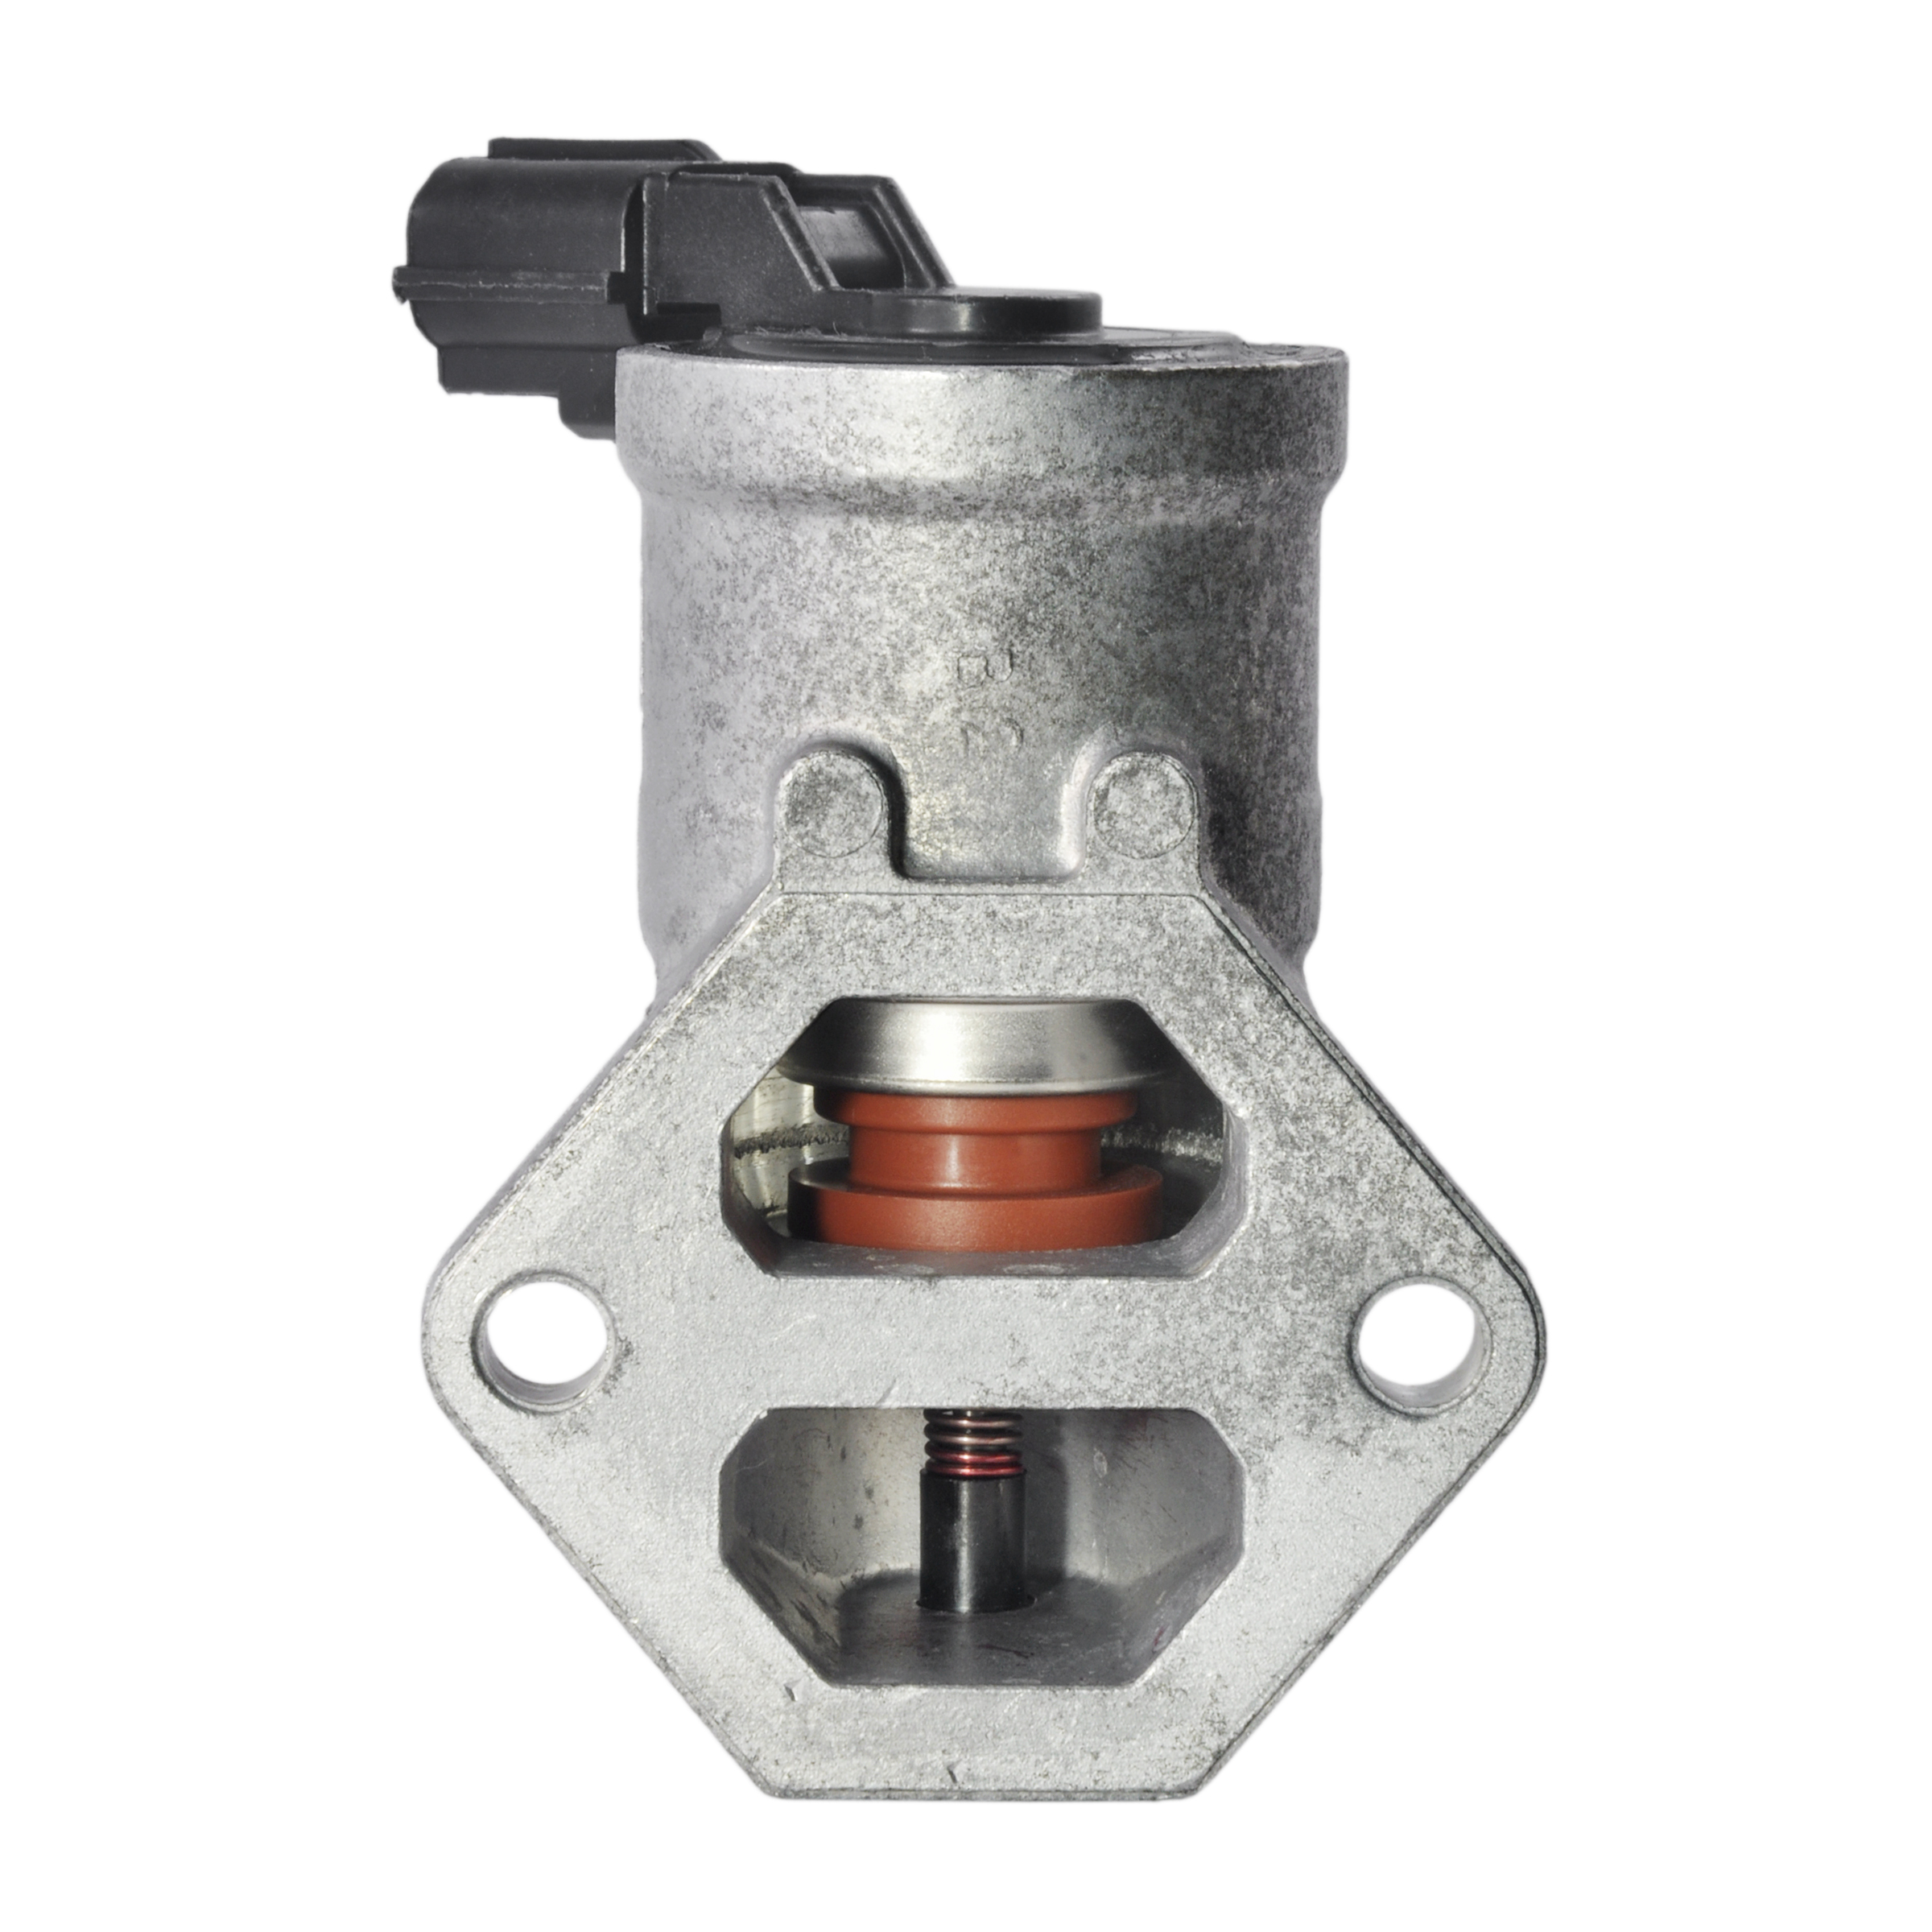 New Herko Idle Air Control Valve IAC1064 For Ford And Mercury 1901-2001